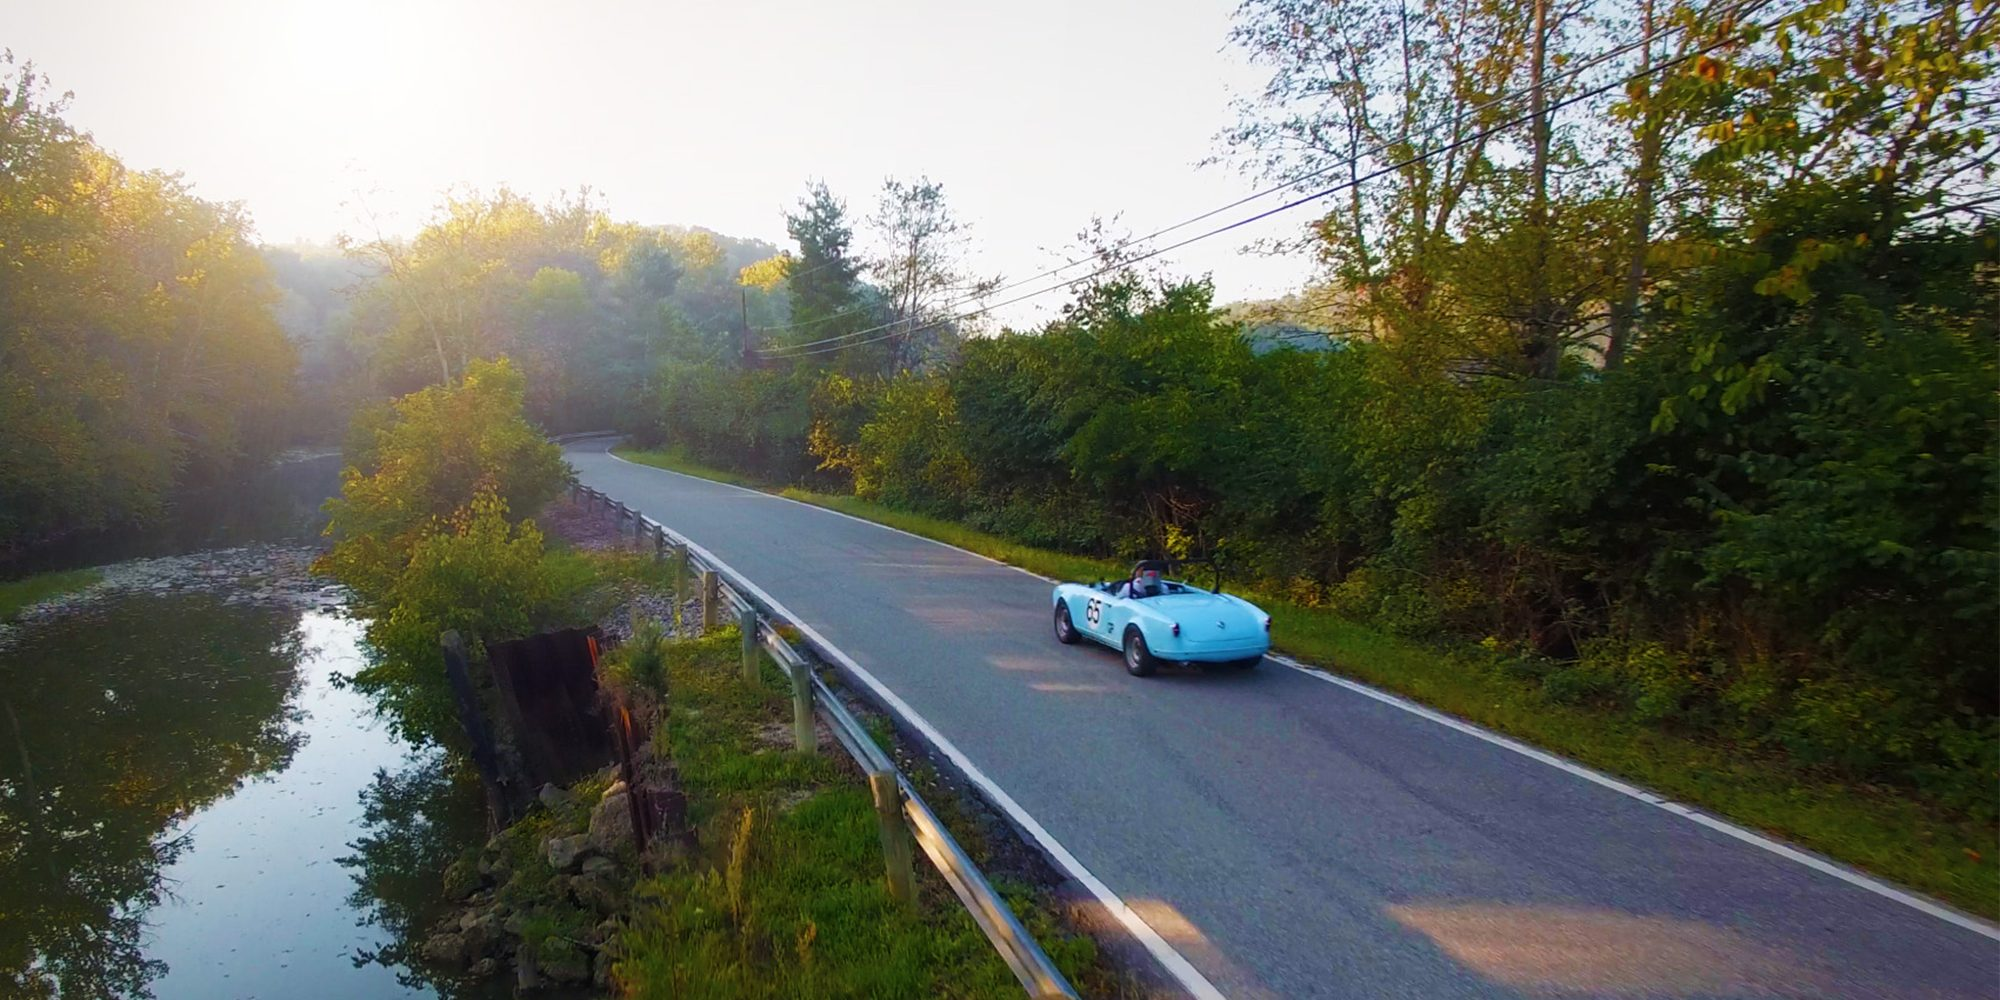 A blue car drives on a road next to a river